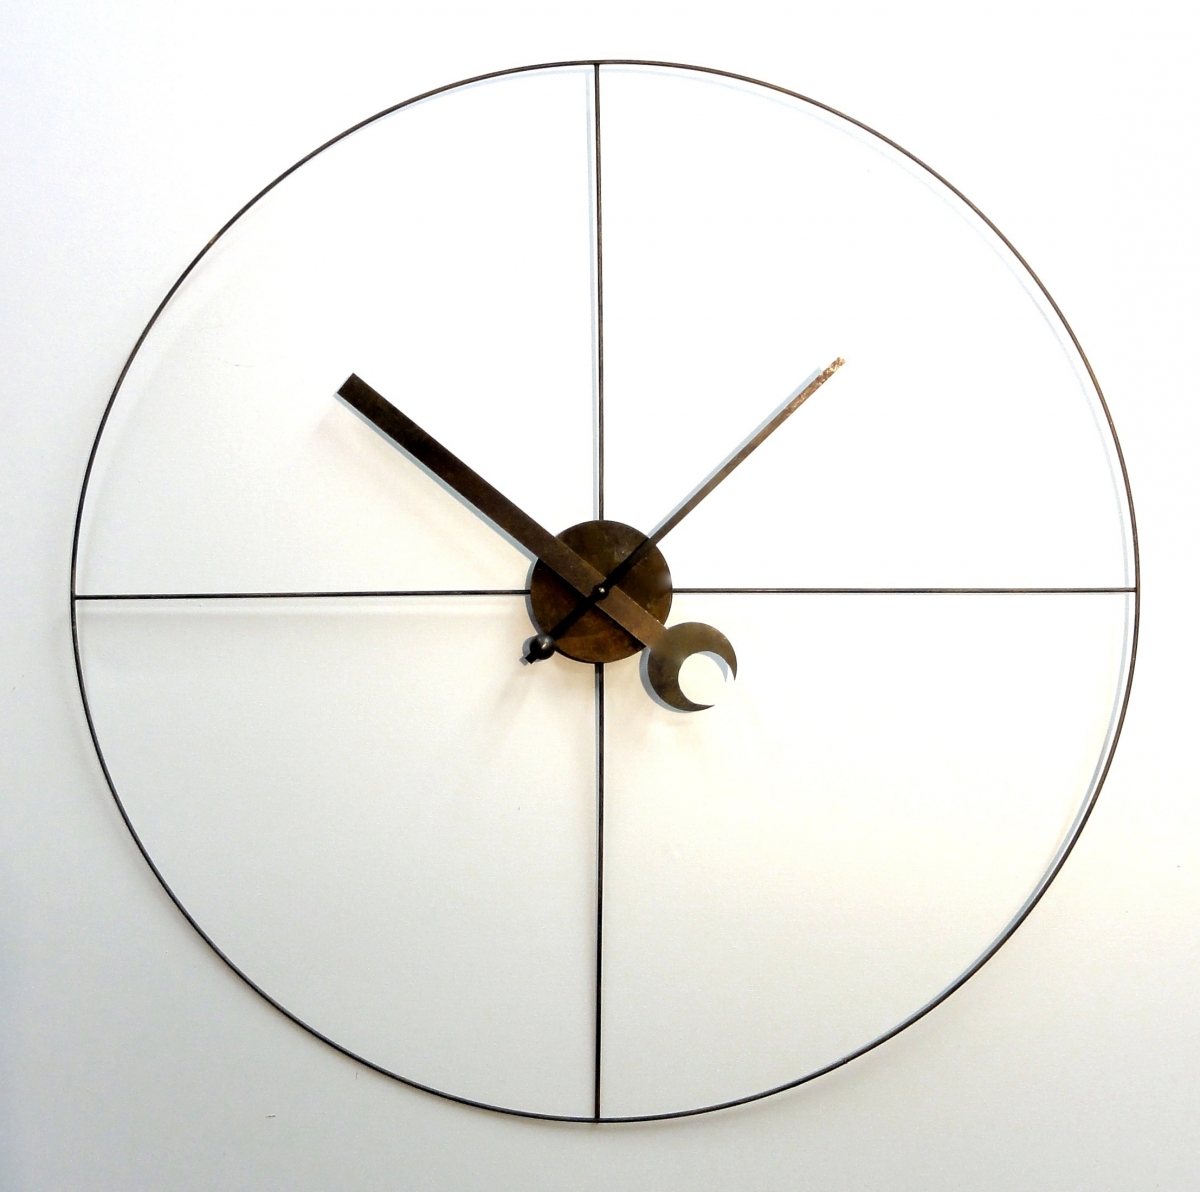 Steampunk Industrial Clock (minimalist) by Art Donovan (large view)